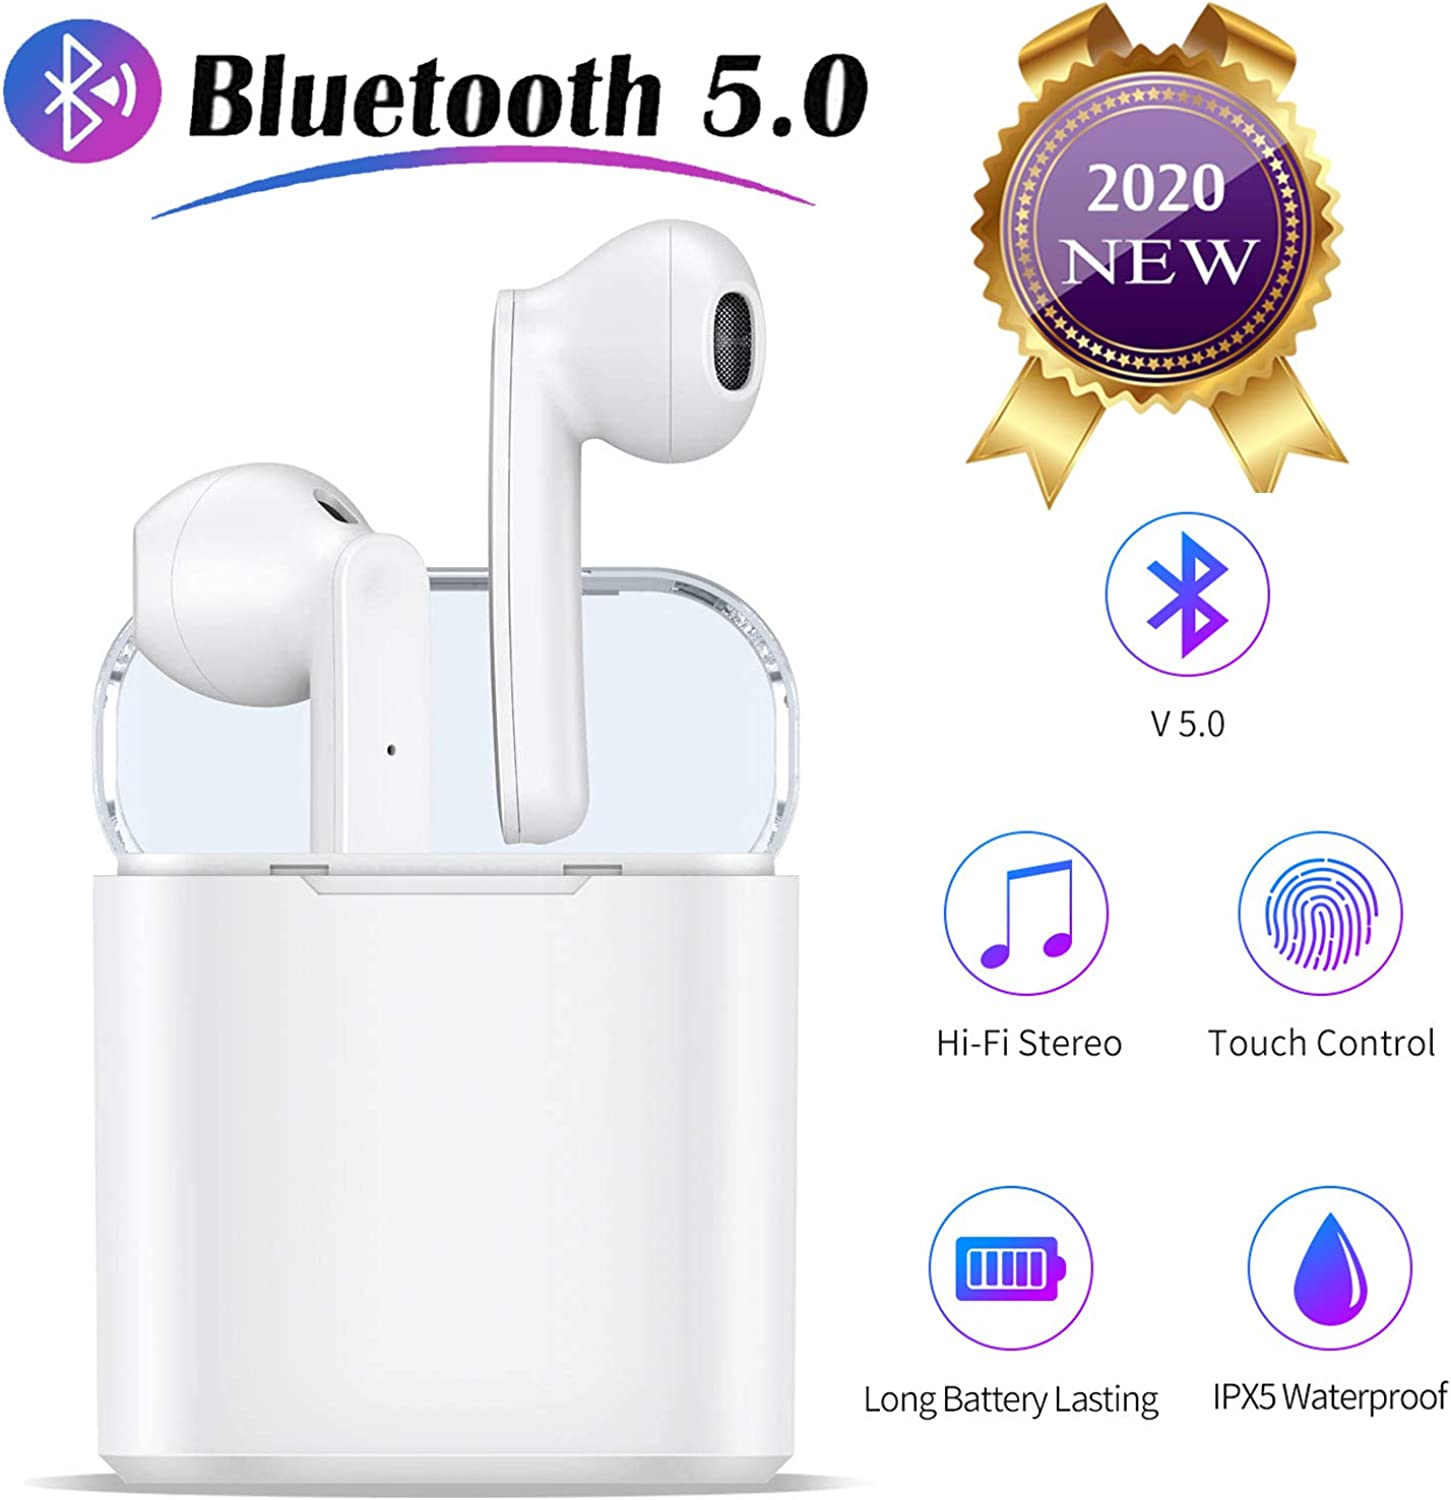 Bluetooth Earbuds Bluetoooth Headphones 5.0 Wireless Earbuds 35H Cycle Playtime in-Ear Wireless Headphones Hi-Fi Stereo Sweatproof Earphones Sport Headsets Built-in Mic for Work//Running//Travel//Gym